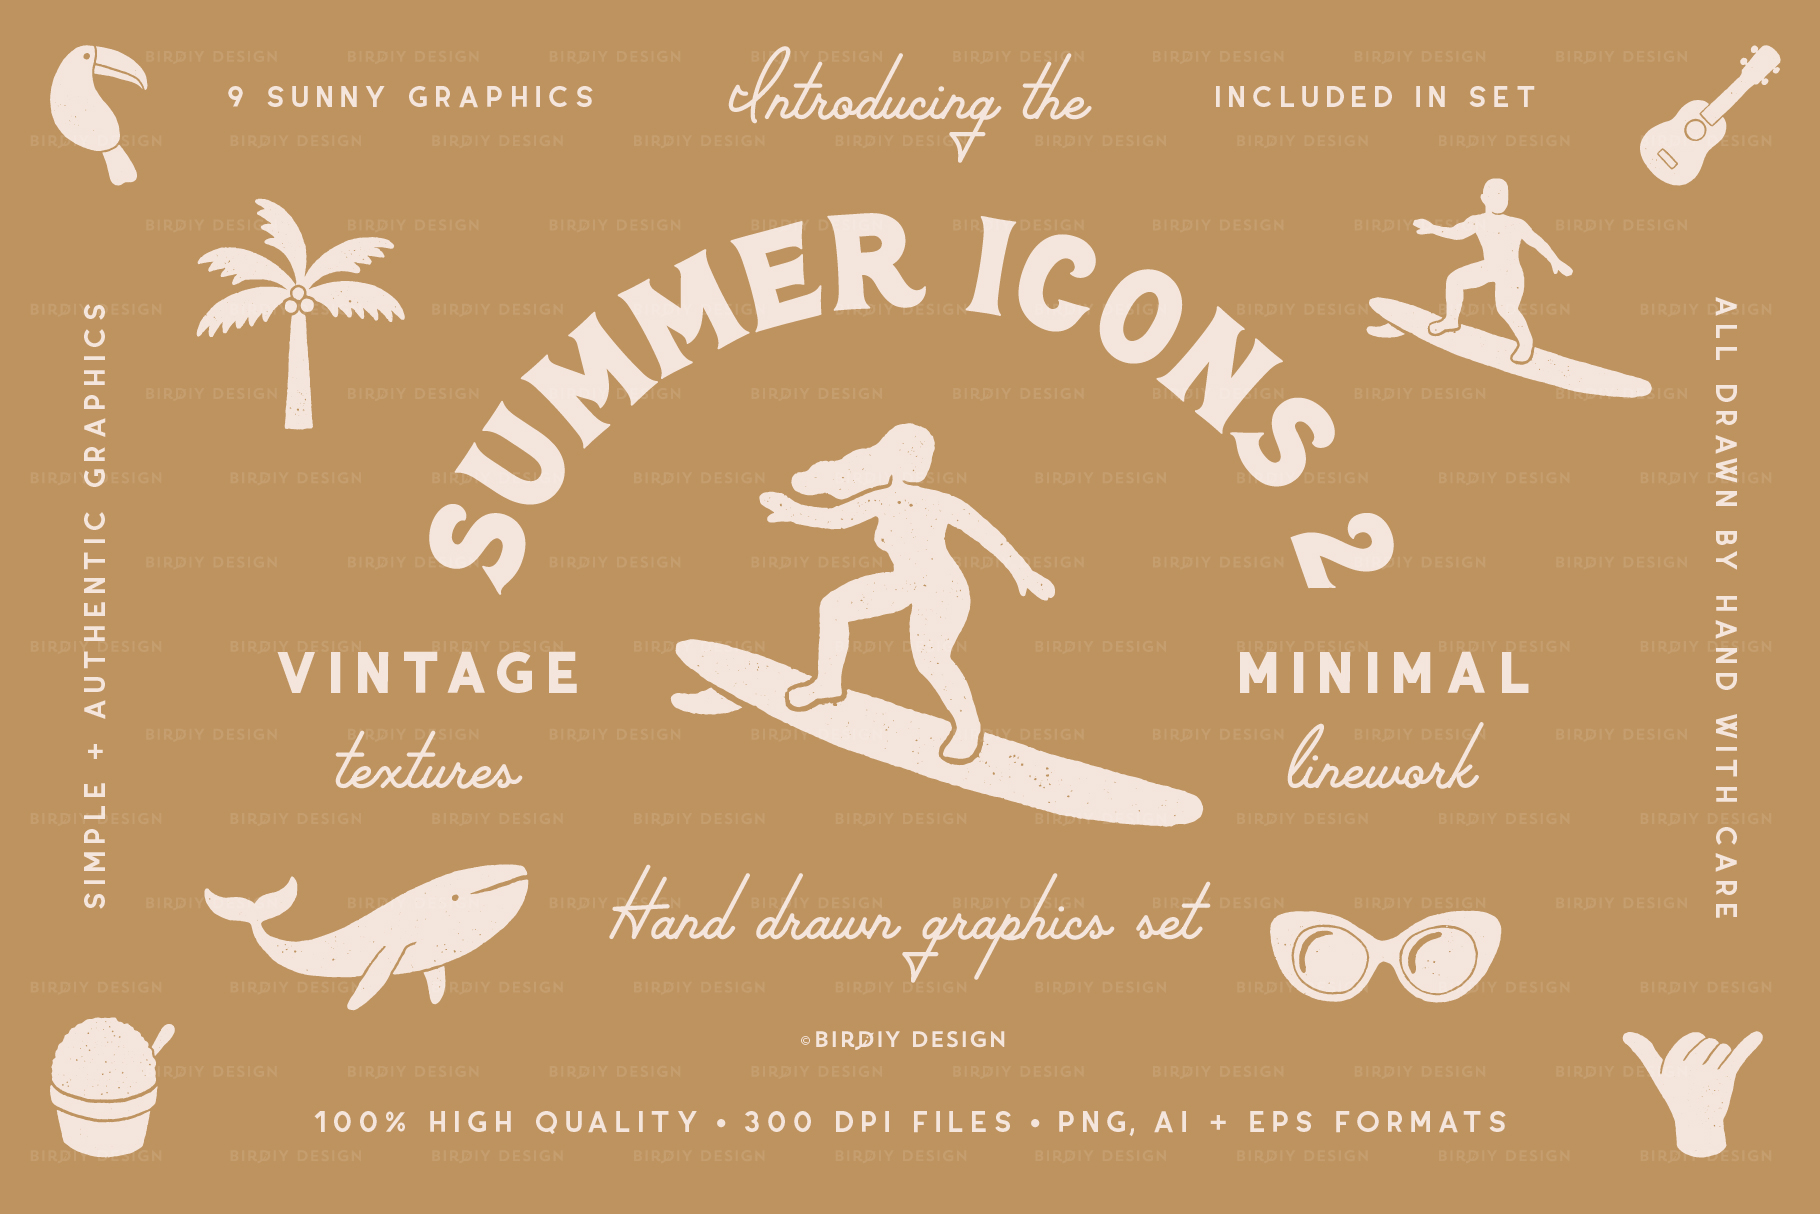 Summer Icons 2 Hand Drawn Graphics Set example image 1